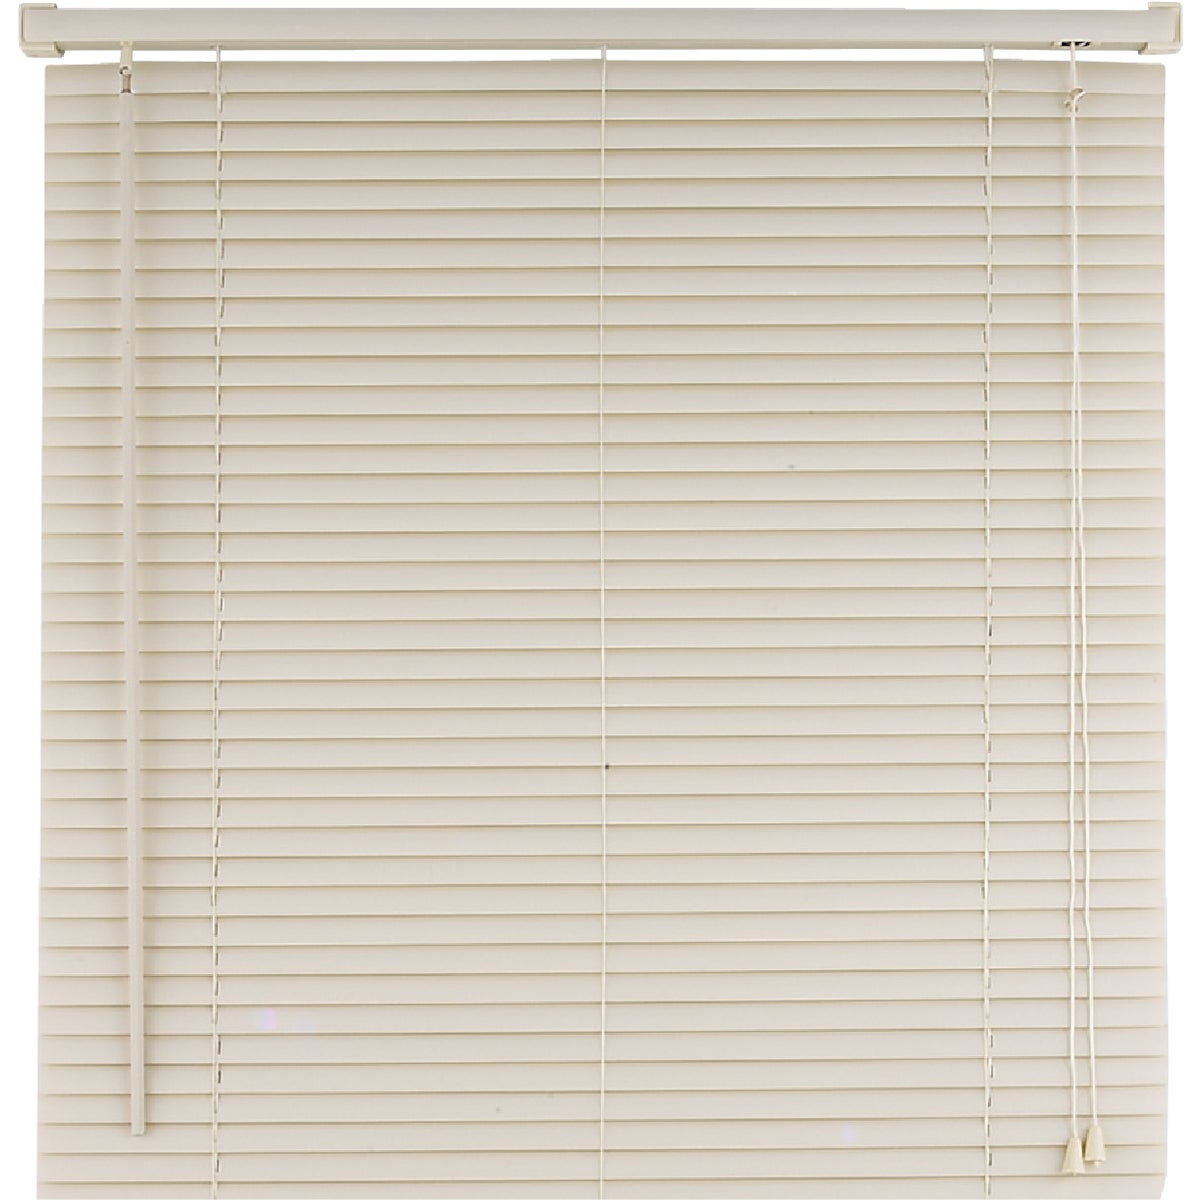 36X64 ALABASTER BLIND - 15043 by Lotus Wind Incom